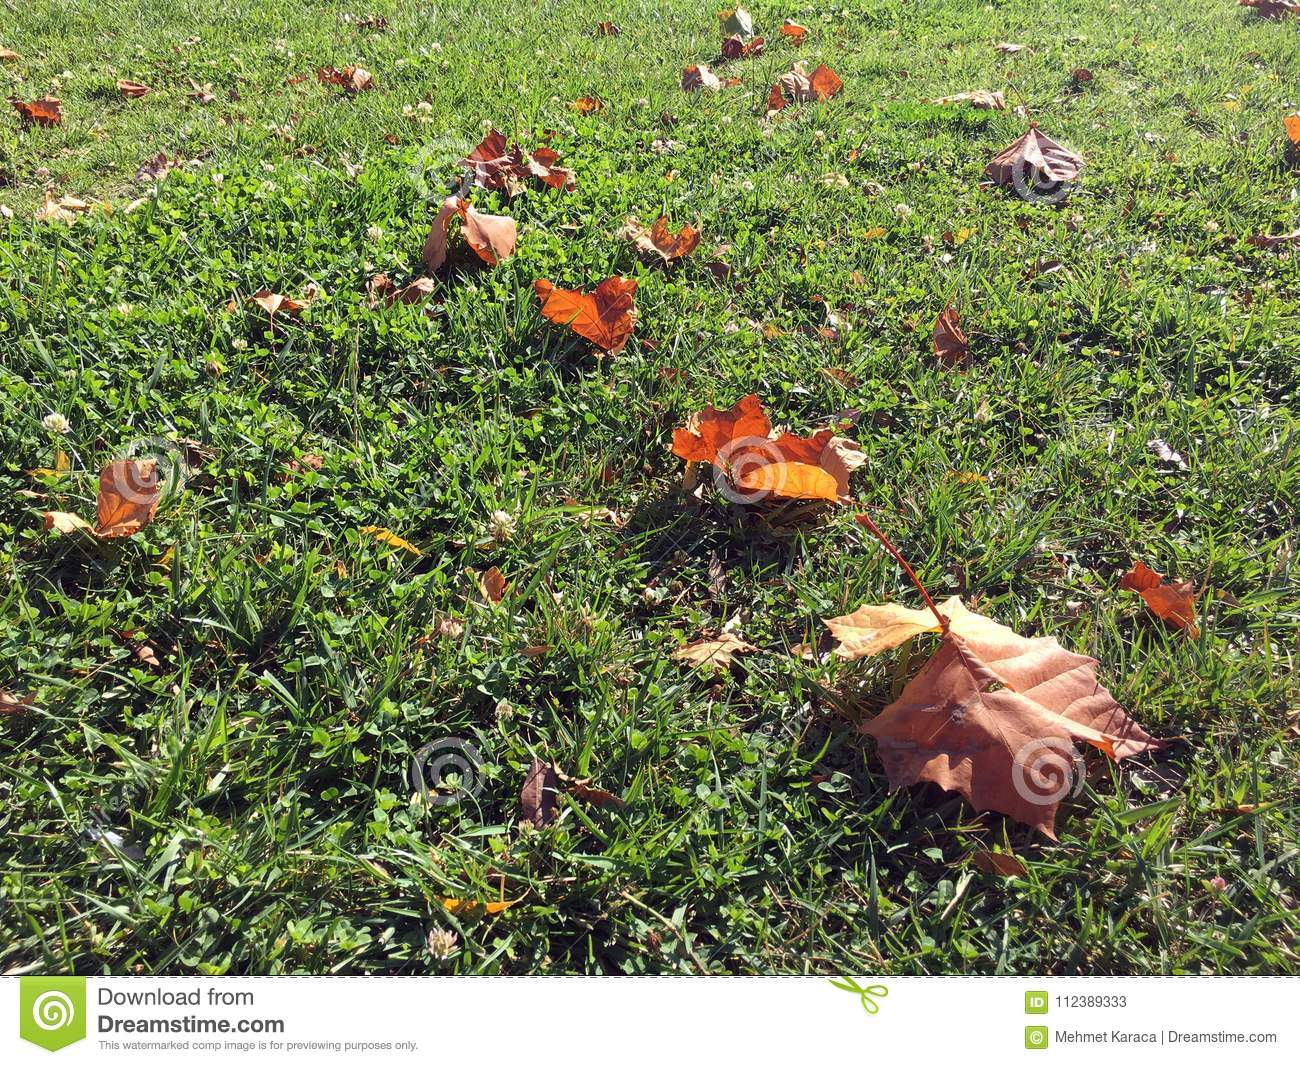 Leafs on the grass in the autumn